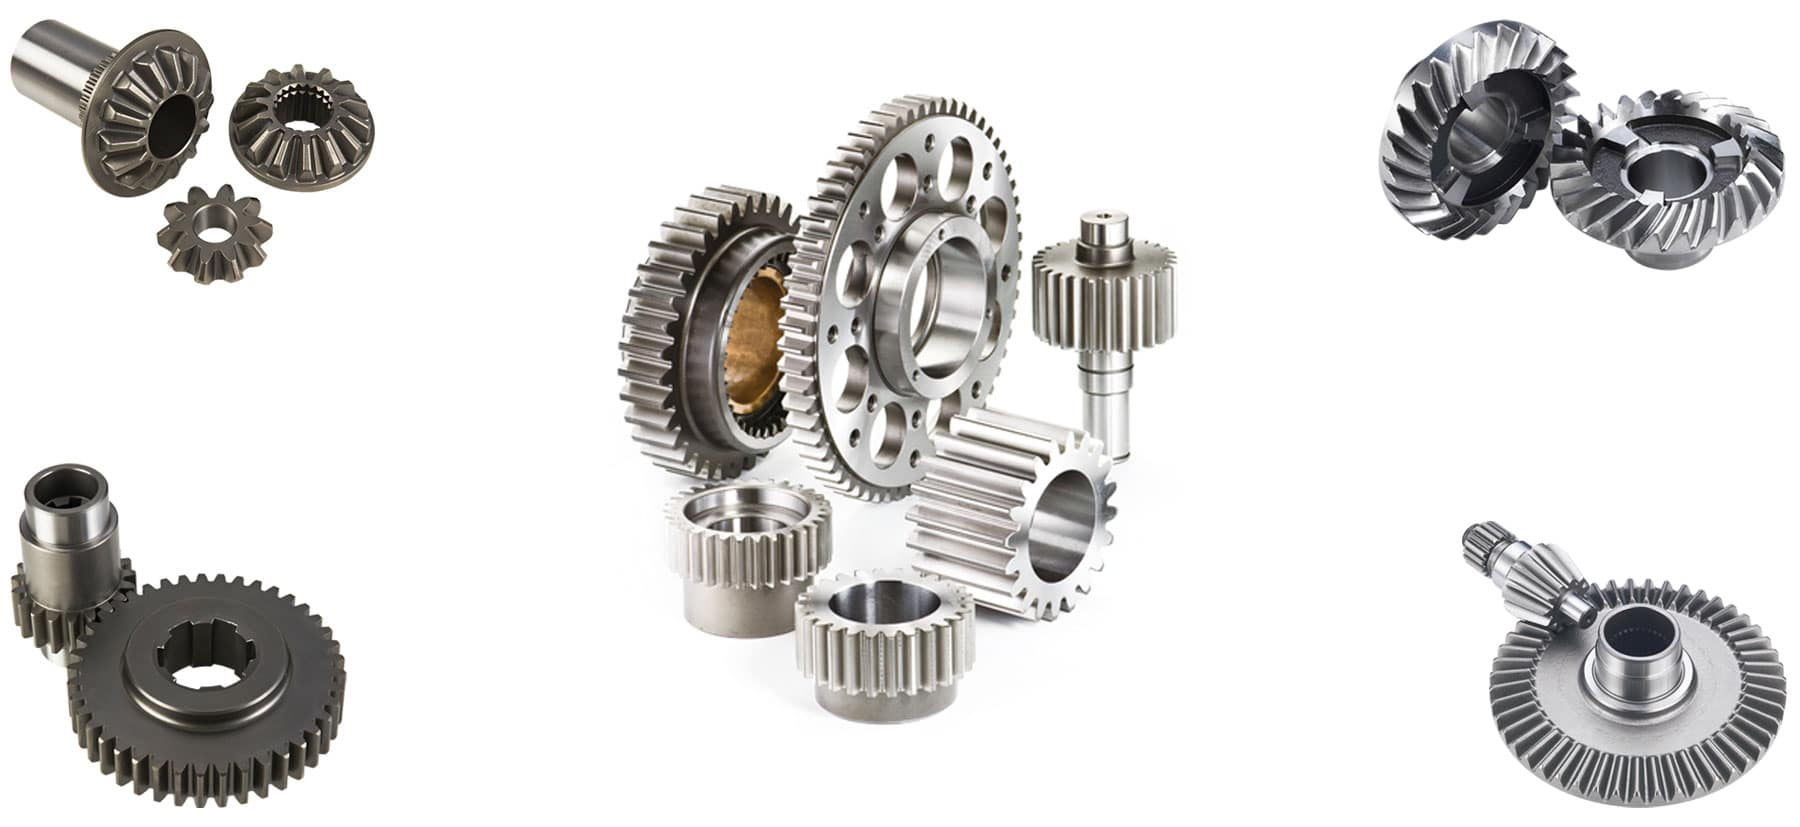 Gear manufacturing services